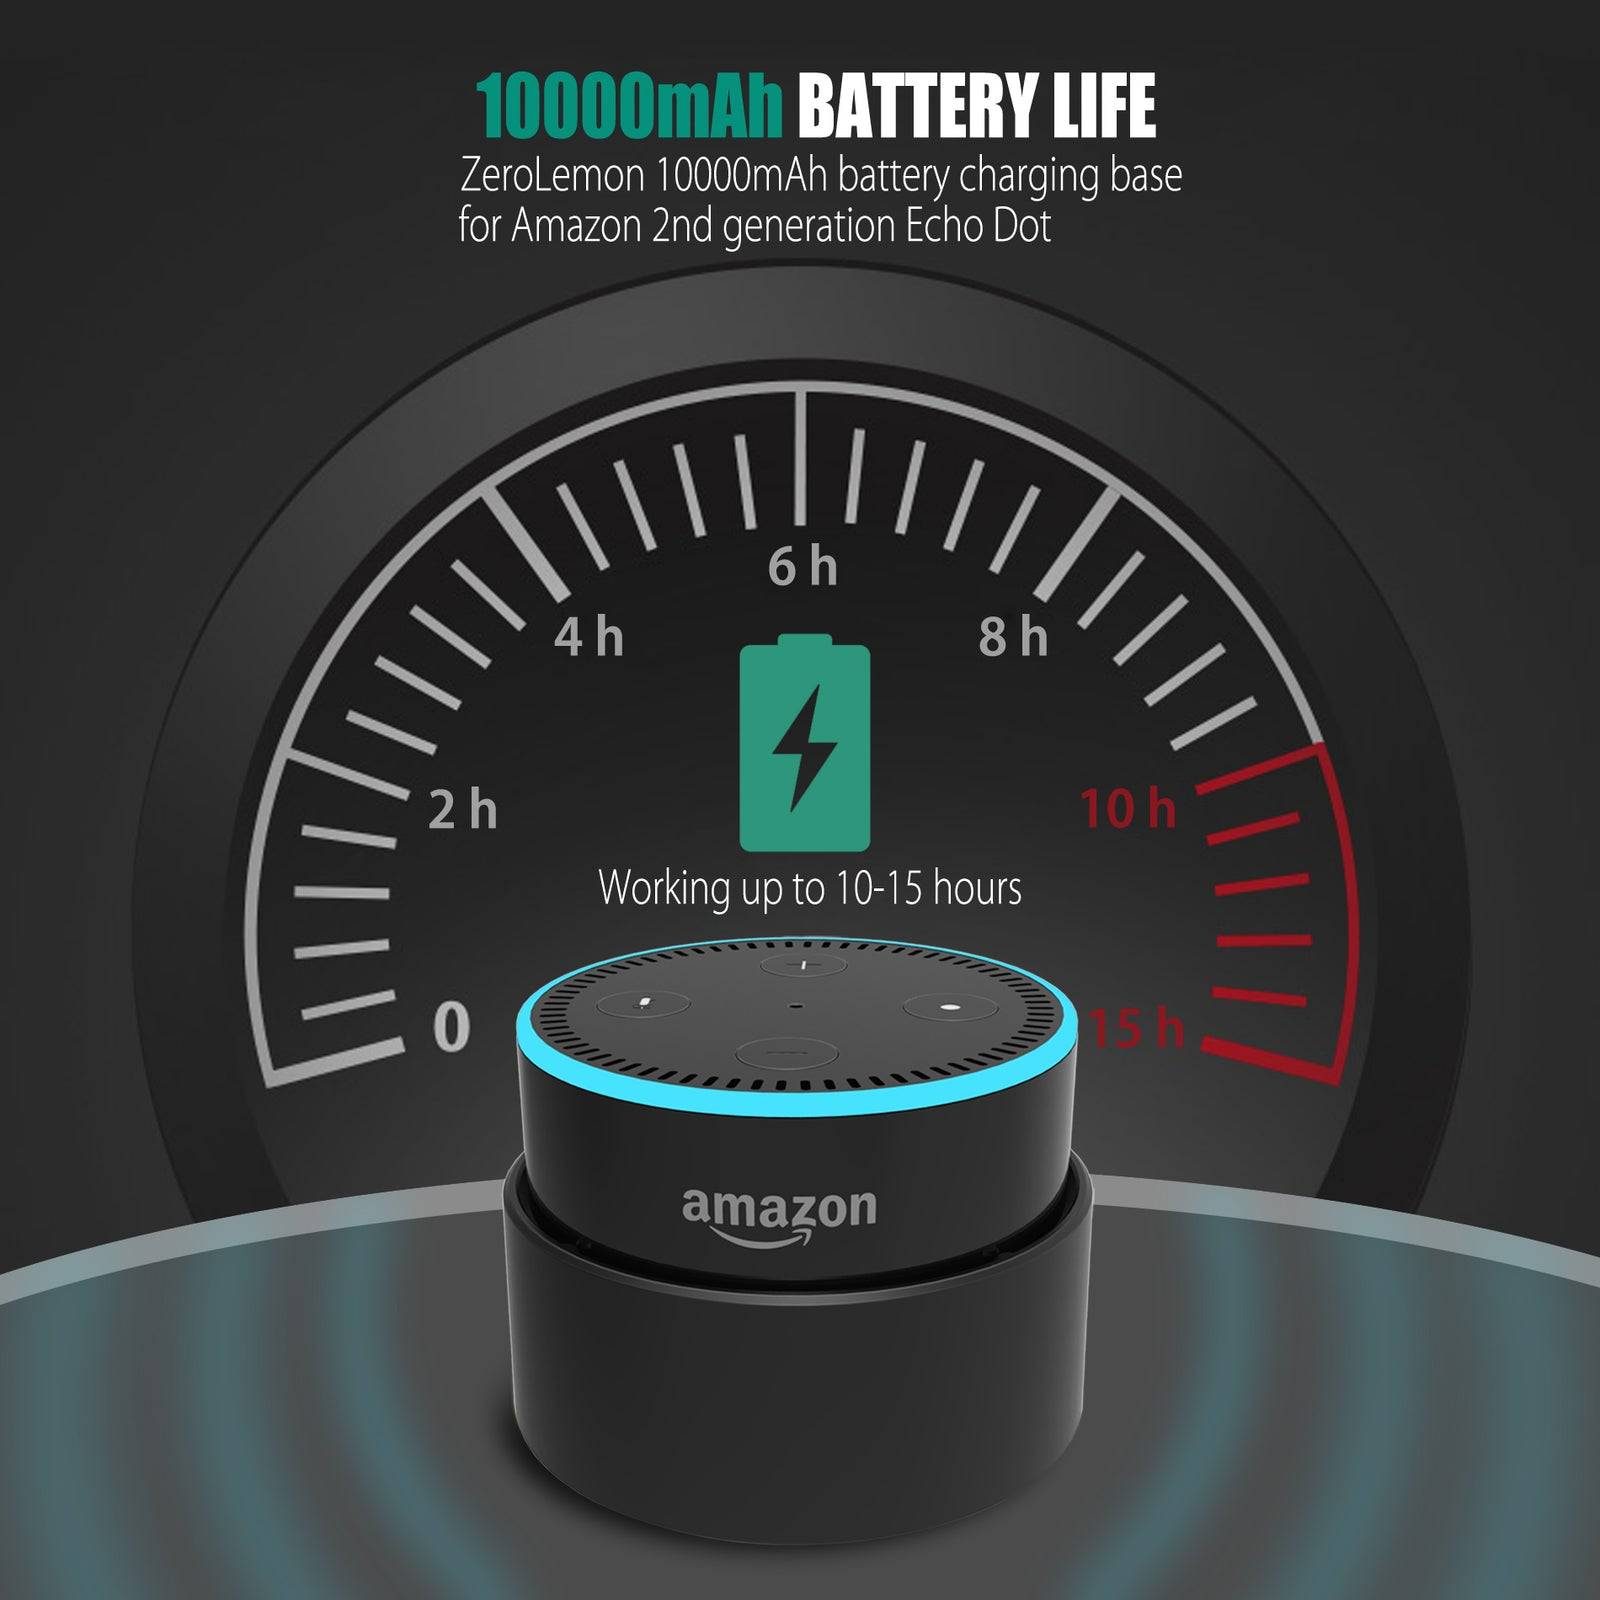 7500mAh Battery Charging Case for Echo Dot 2nd Generation Amazon [Shipping to US Only]